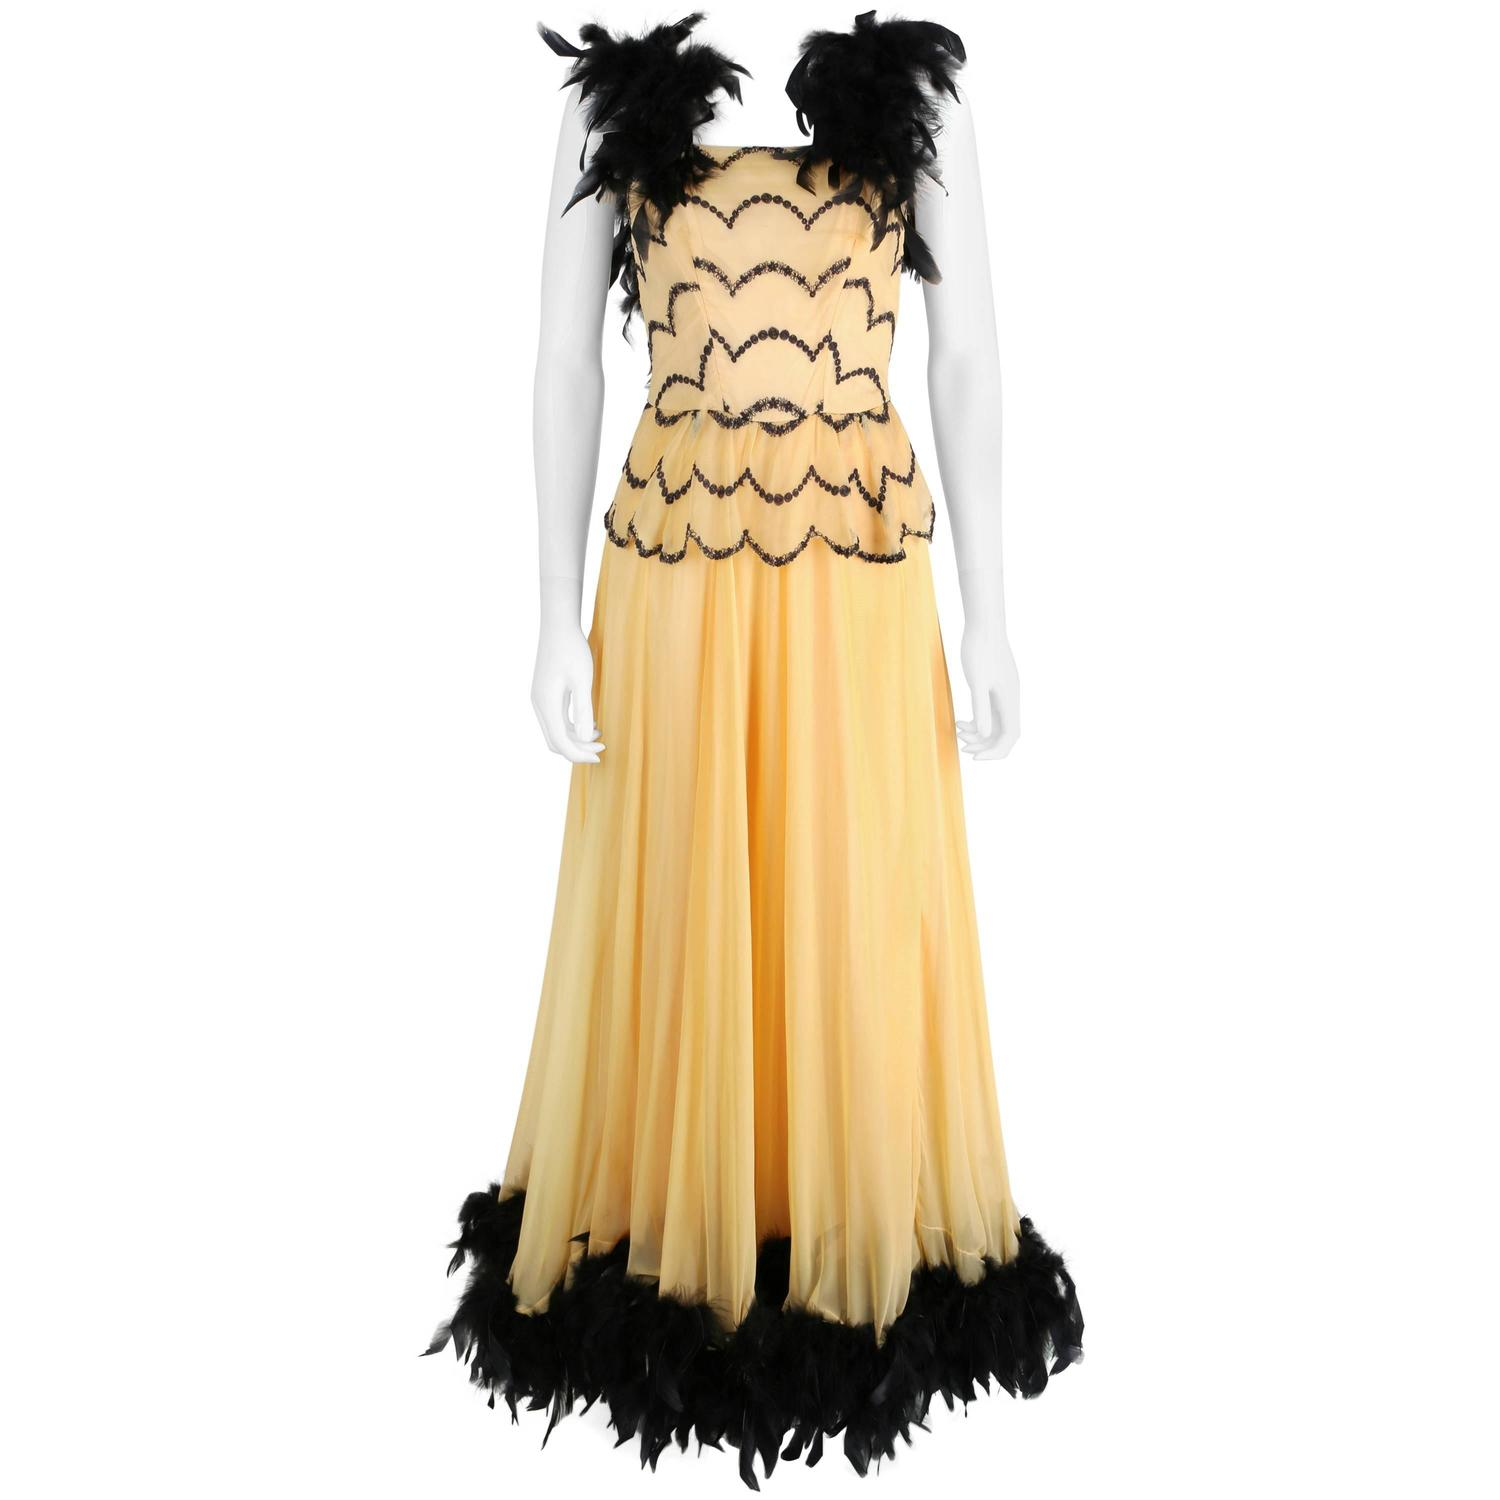 Feather Dressing Gown: 1940's Black Feather Trim Evening